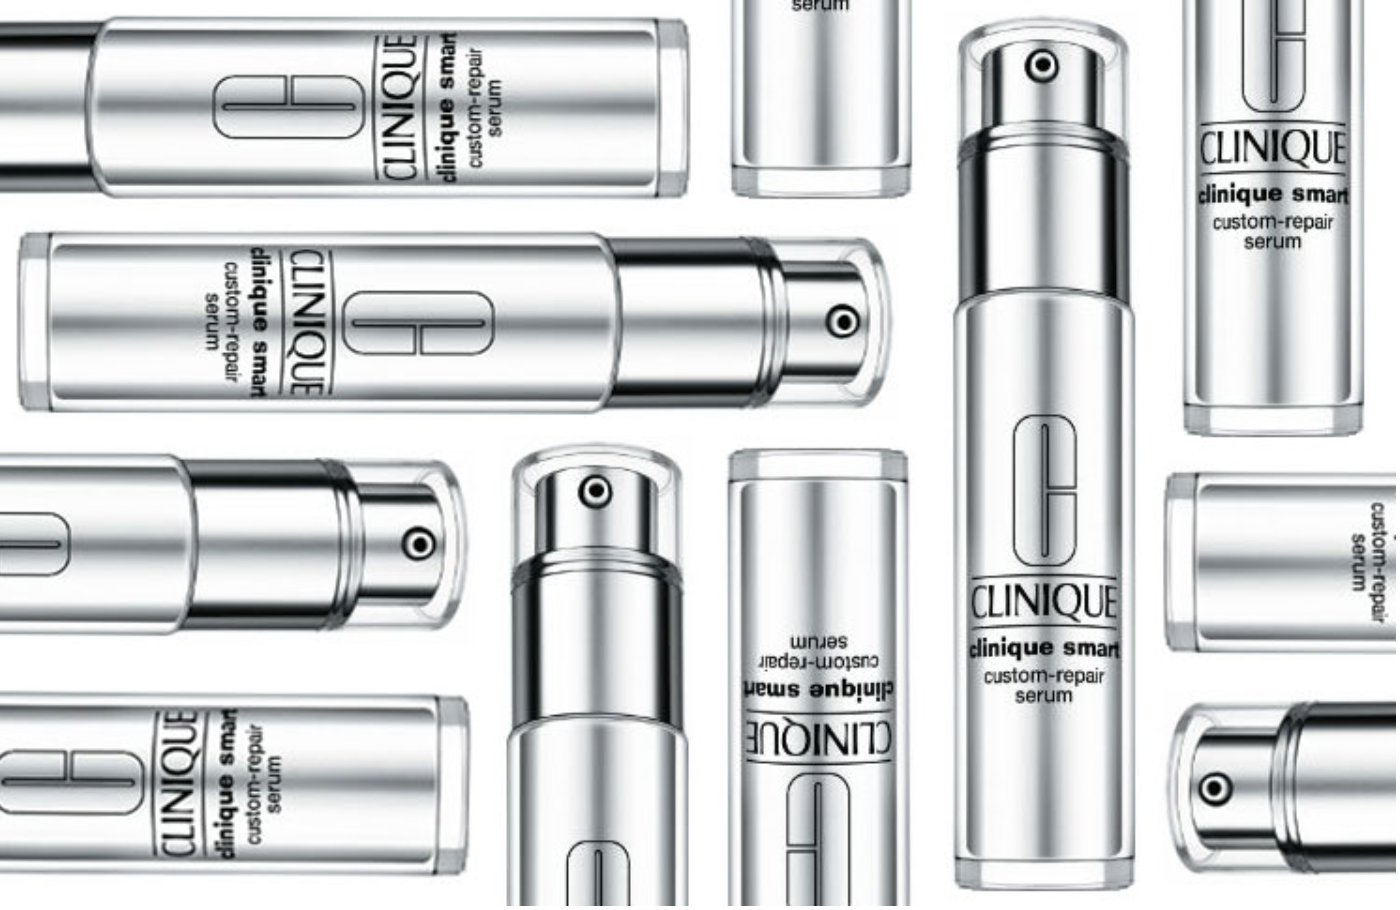 clinique smart serums 2014 pic